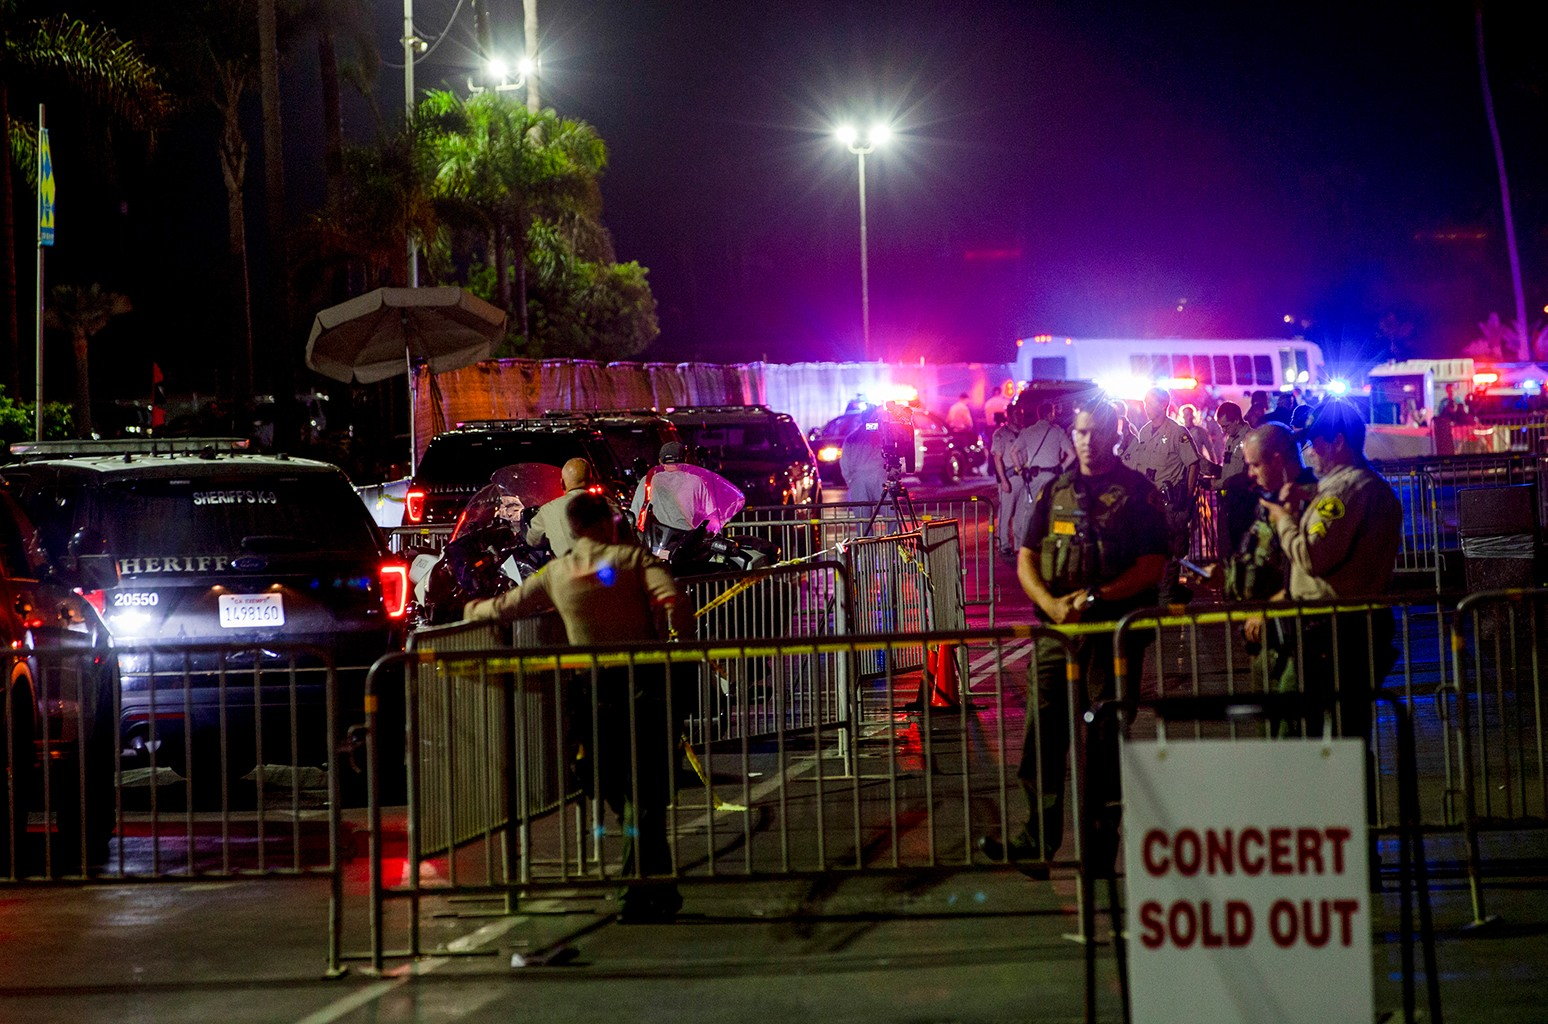 Law enforcement  secures the crime scene after shots were fired before an Ice Cube concert at Del Mar Race Track on Sept. 2, 2018 in Del Mar, Calif.